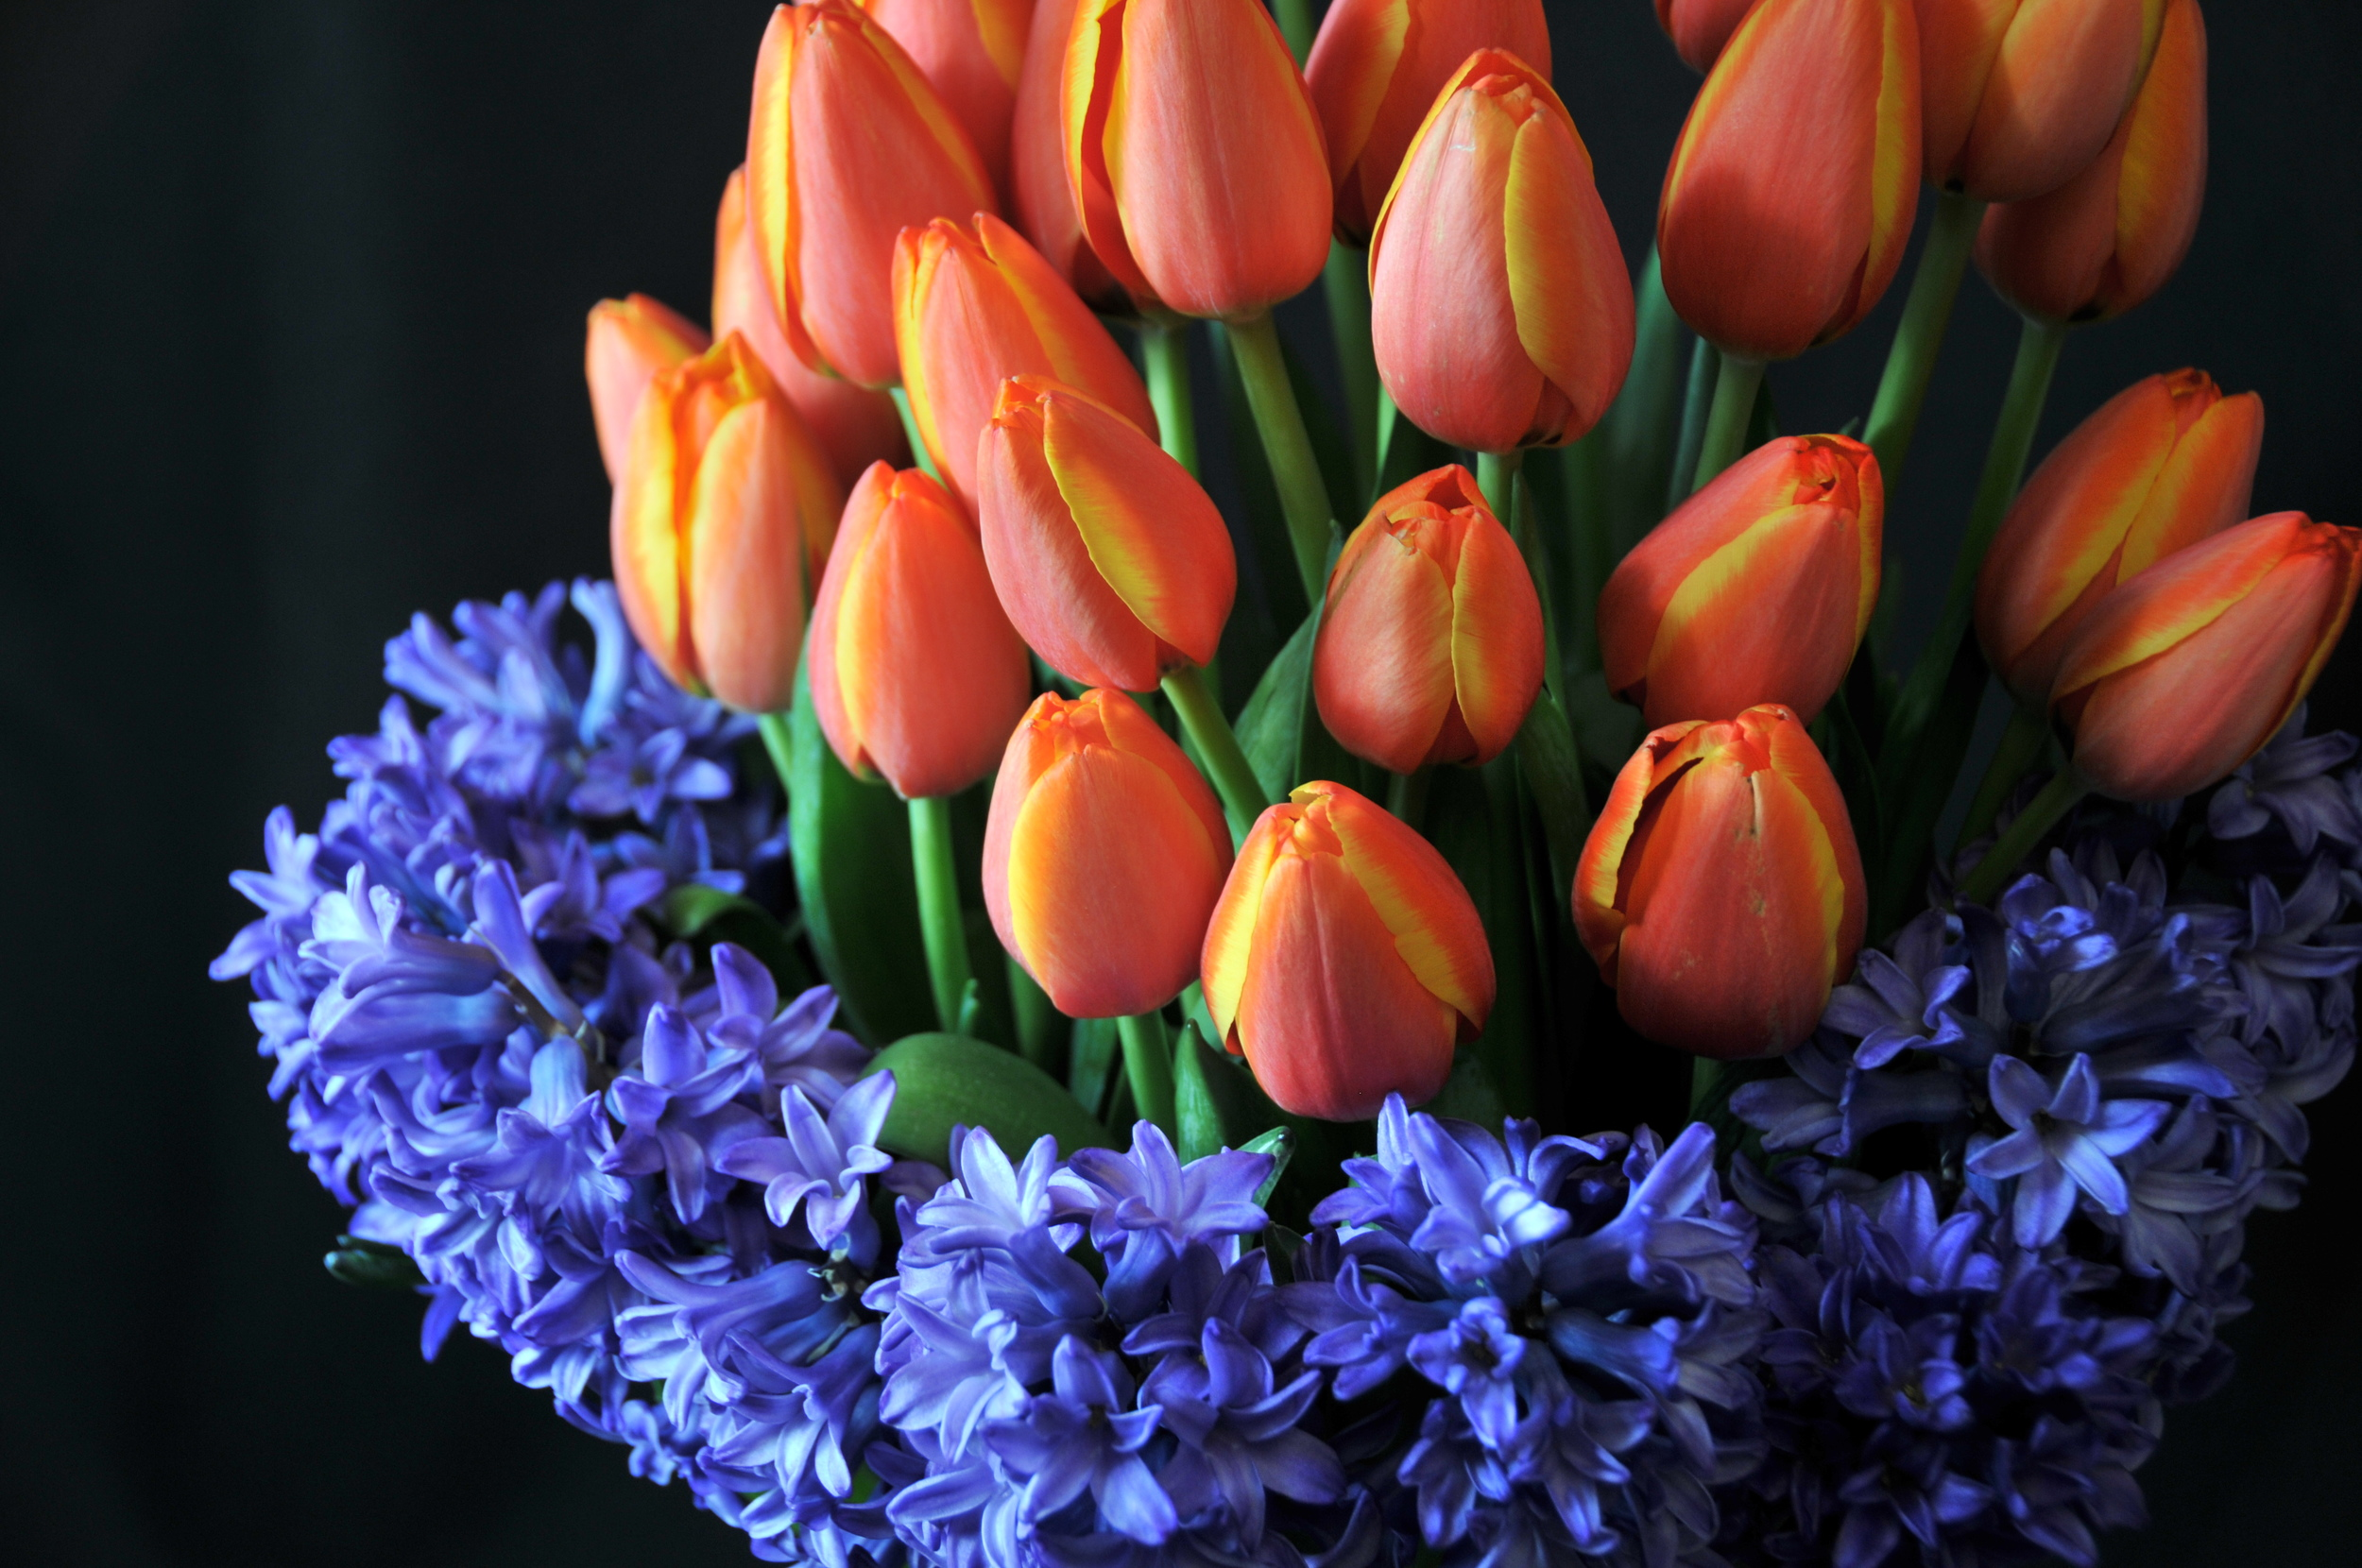 """The tulips natural stretching was accentuated by stones in the bottom of the vase, so it looks like tulips with a hyacinth """"collar""""."""